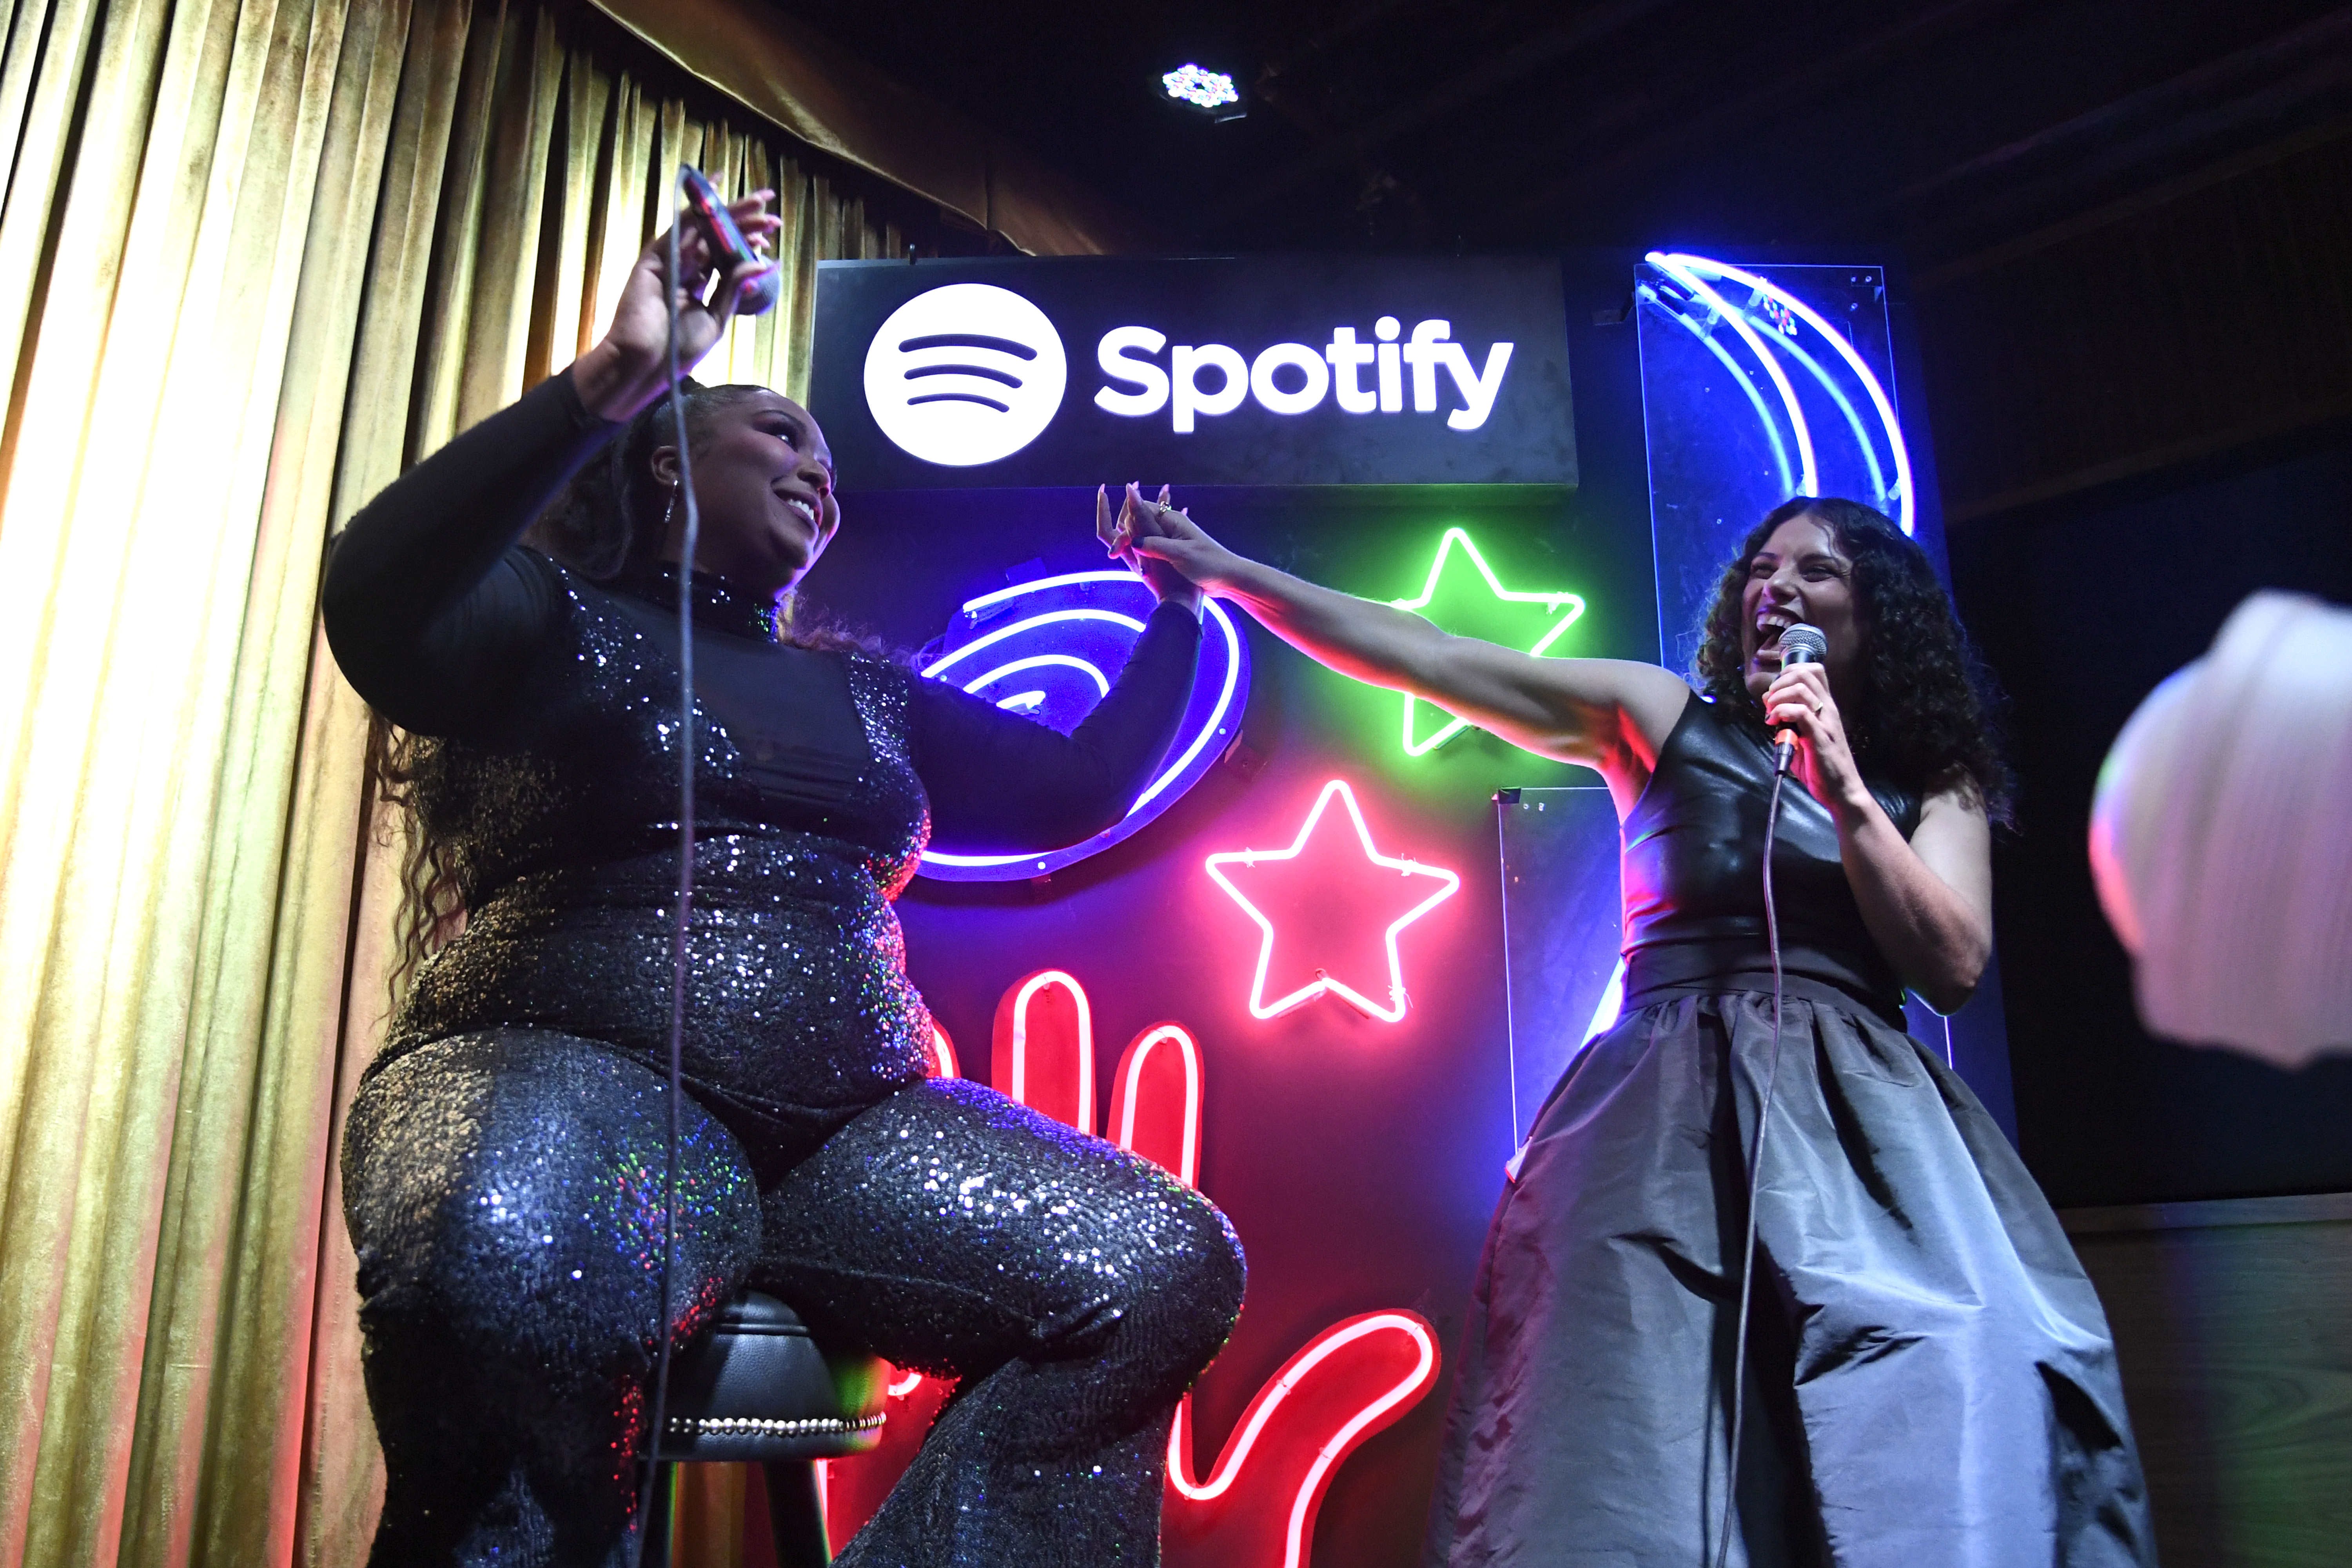 Spotify Cosmic Playlist Launch Event